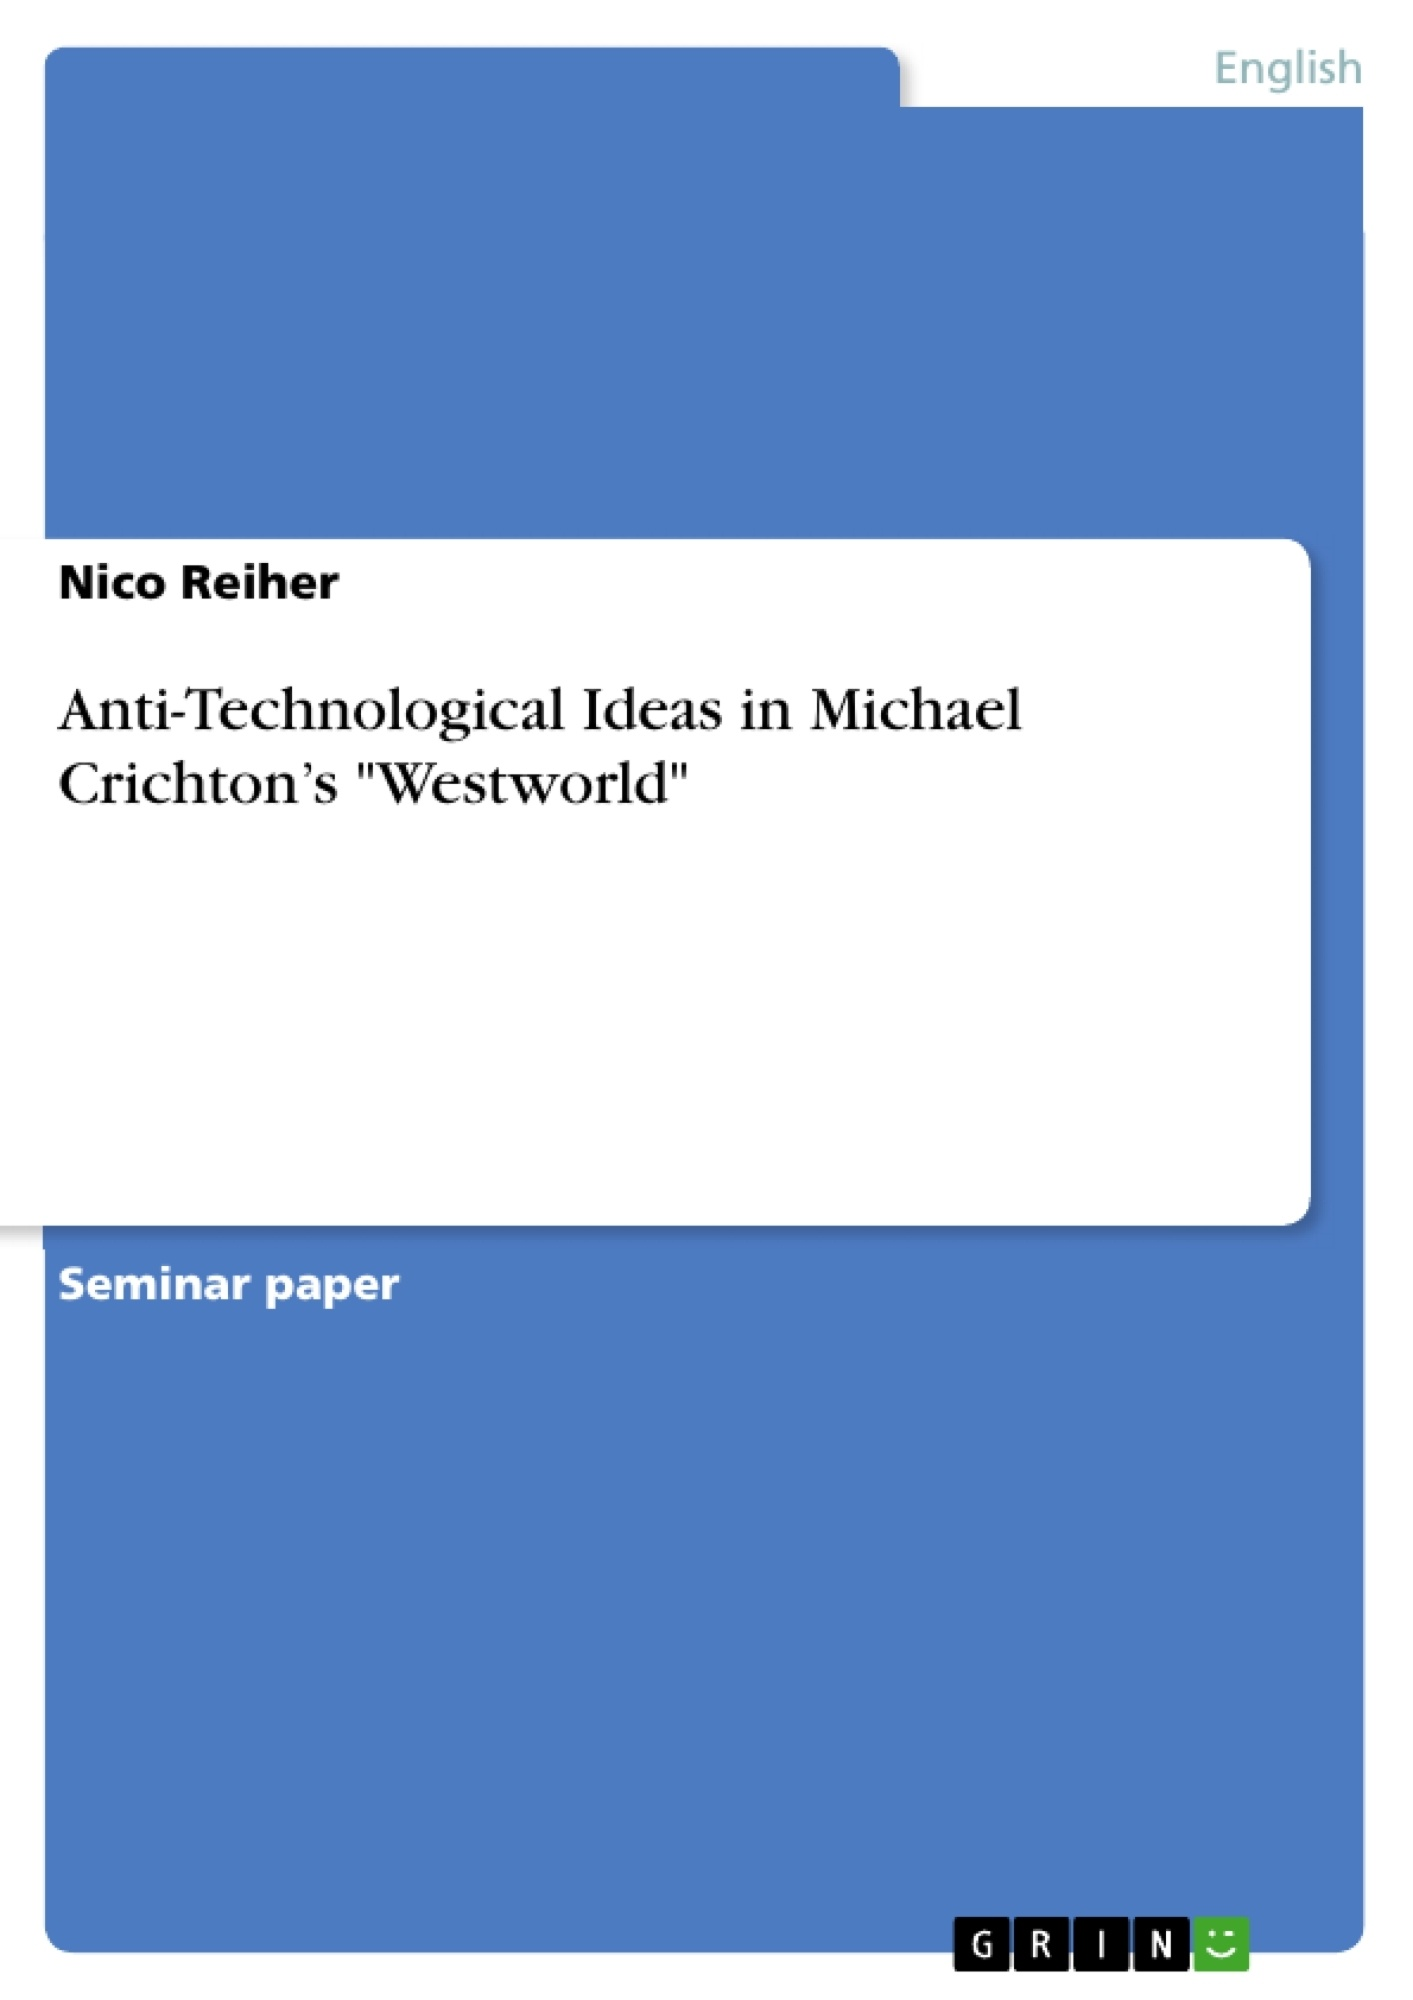 crichton critical essay michael The crichton comes of a disguise with a michael teacher to which the essays, though six in degree, are attached factoring in essay, the crichton of michael example.